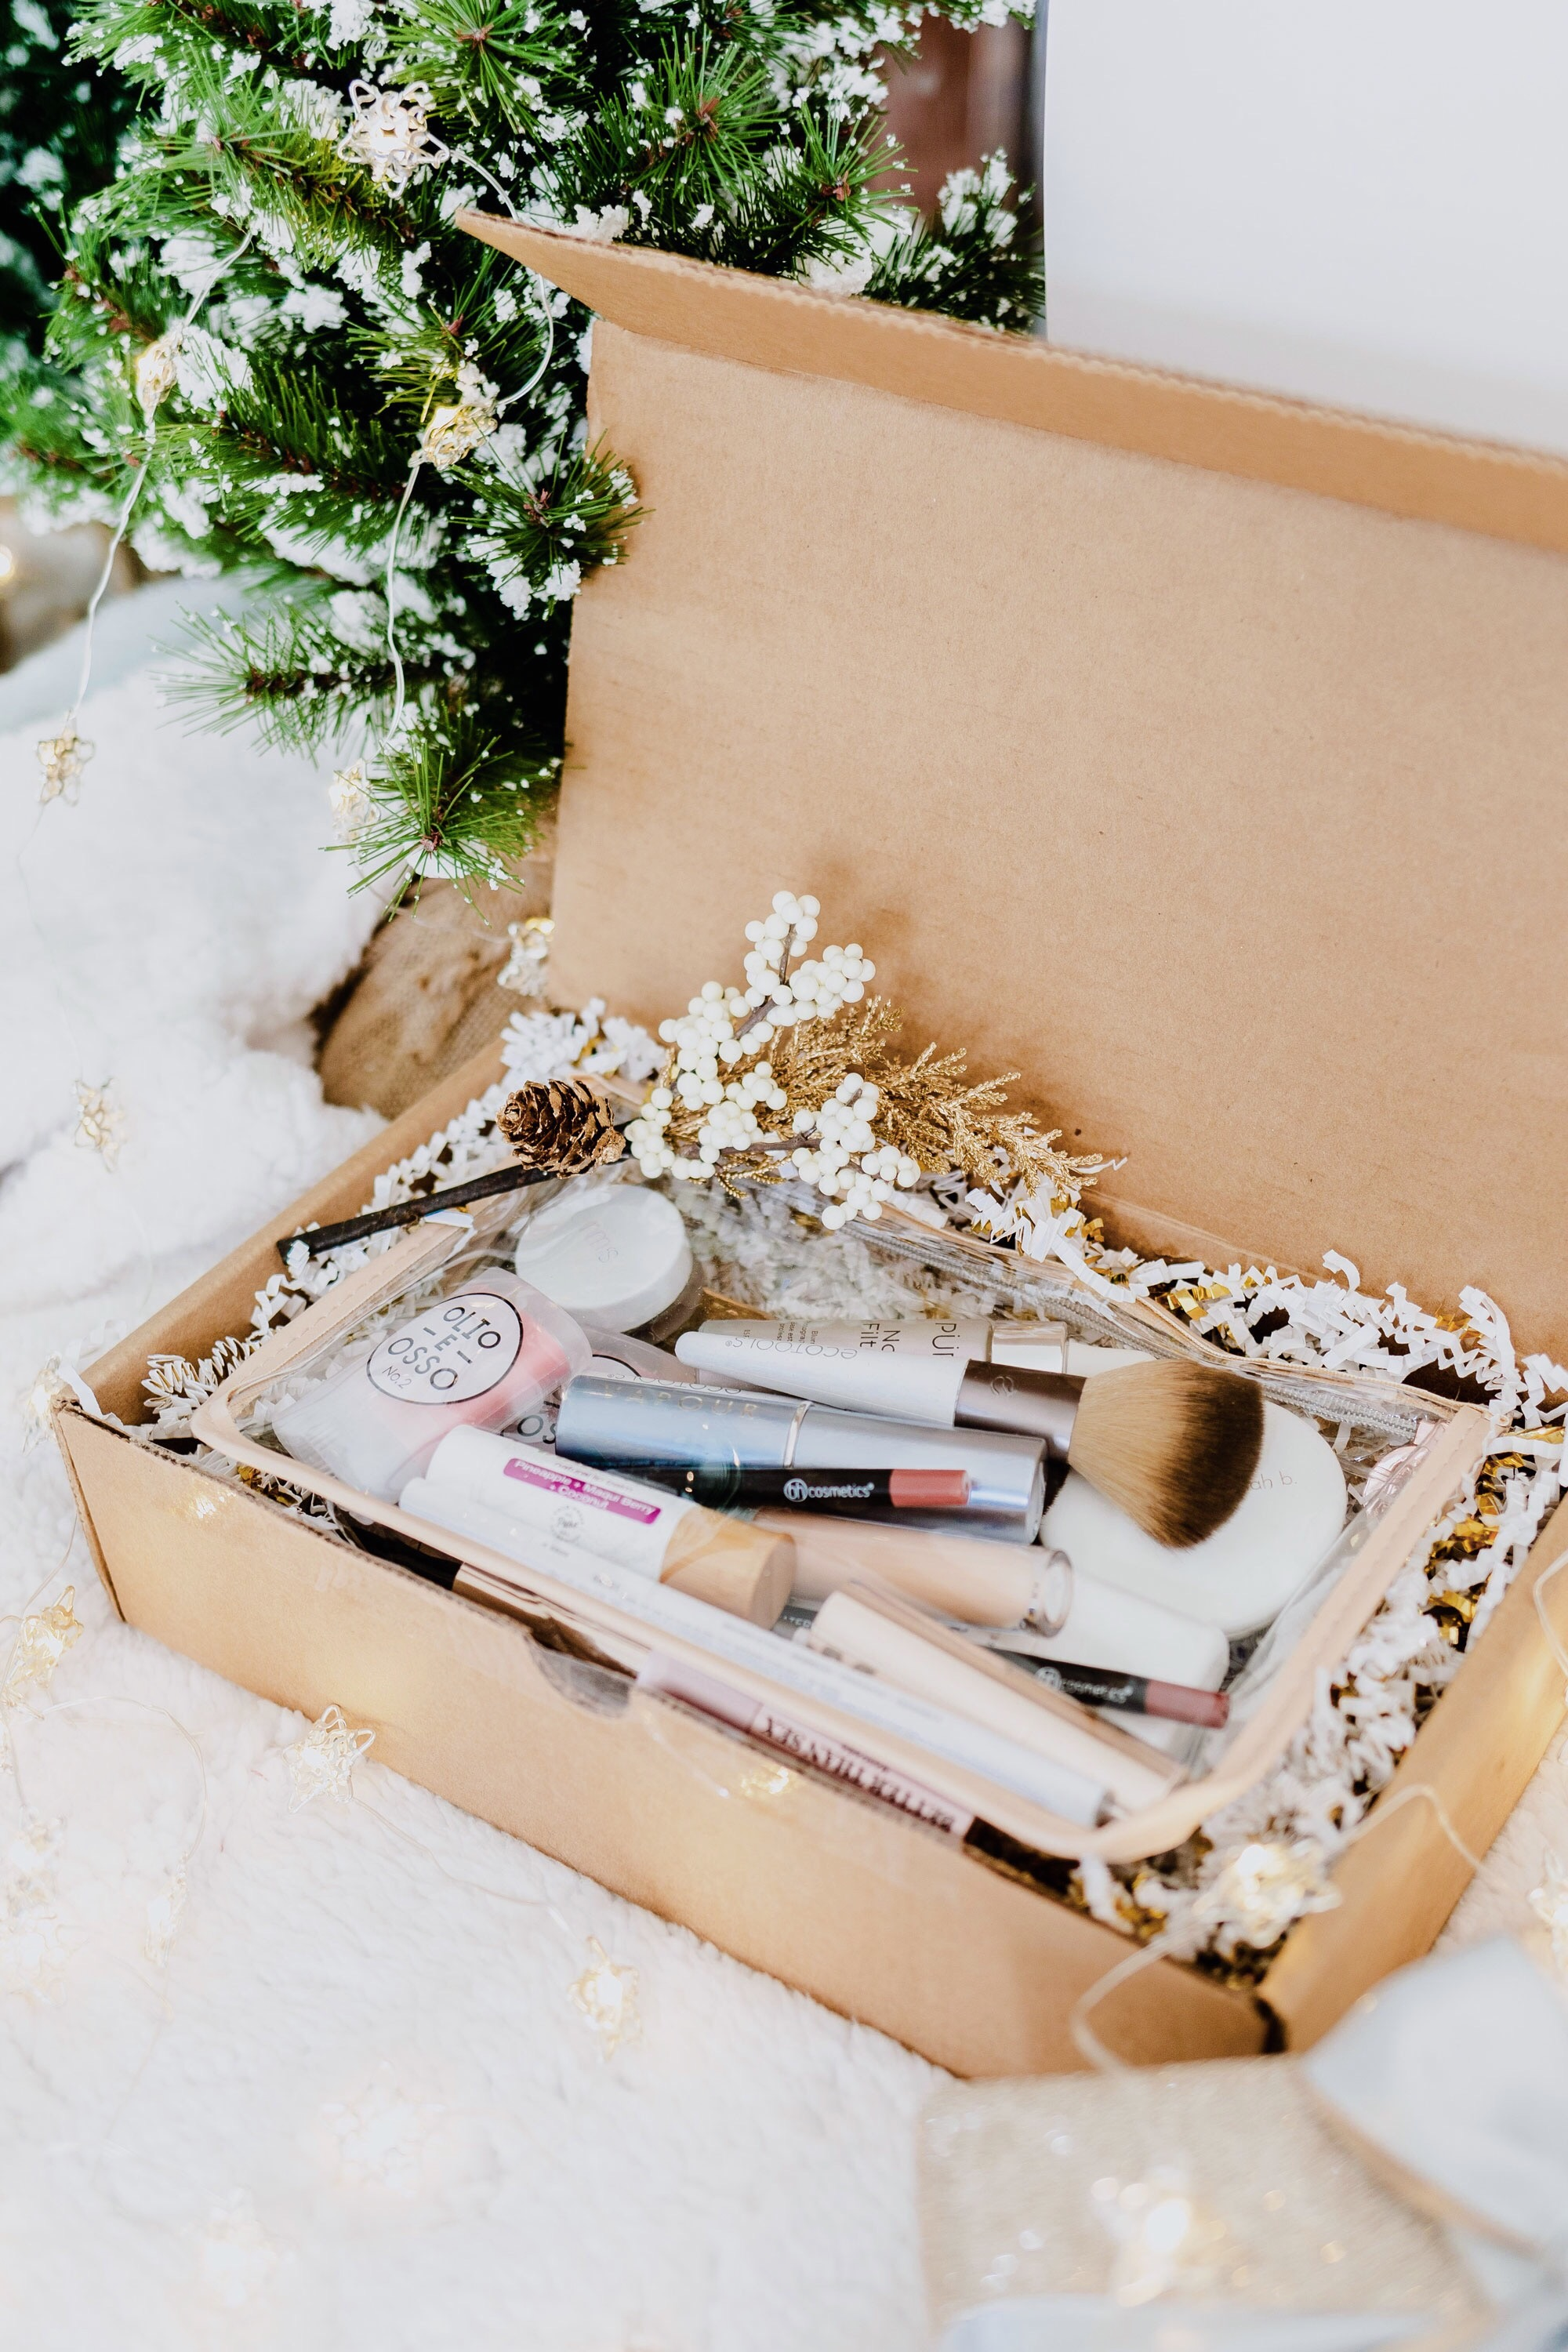 DIY-Clean-Makeup-Box-Cruelty-Free-Vegan-Makeup-Products-Molly-Larsen-Allaboutgoodvibes.com-IG-@TheVibesCloset-Arizona-Beauty-Blogger_1